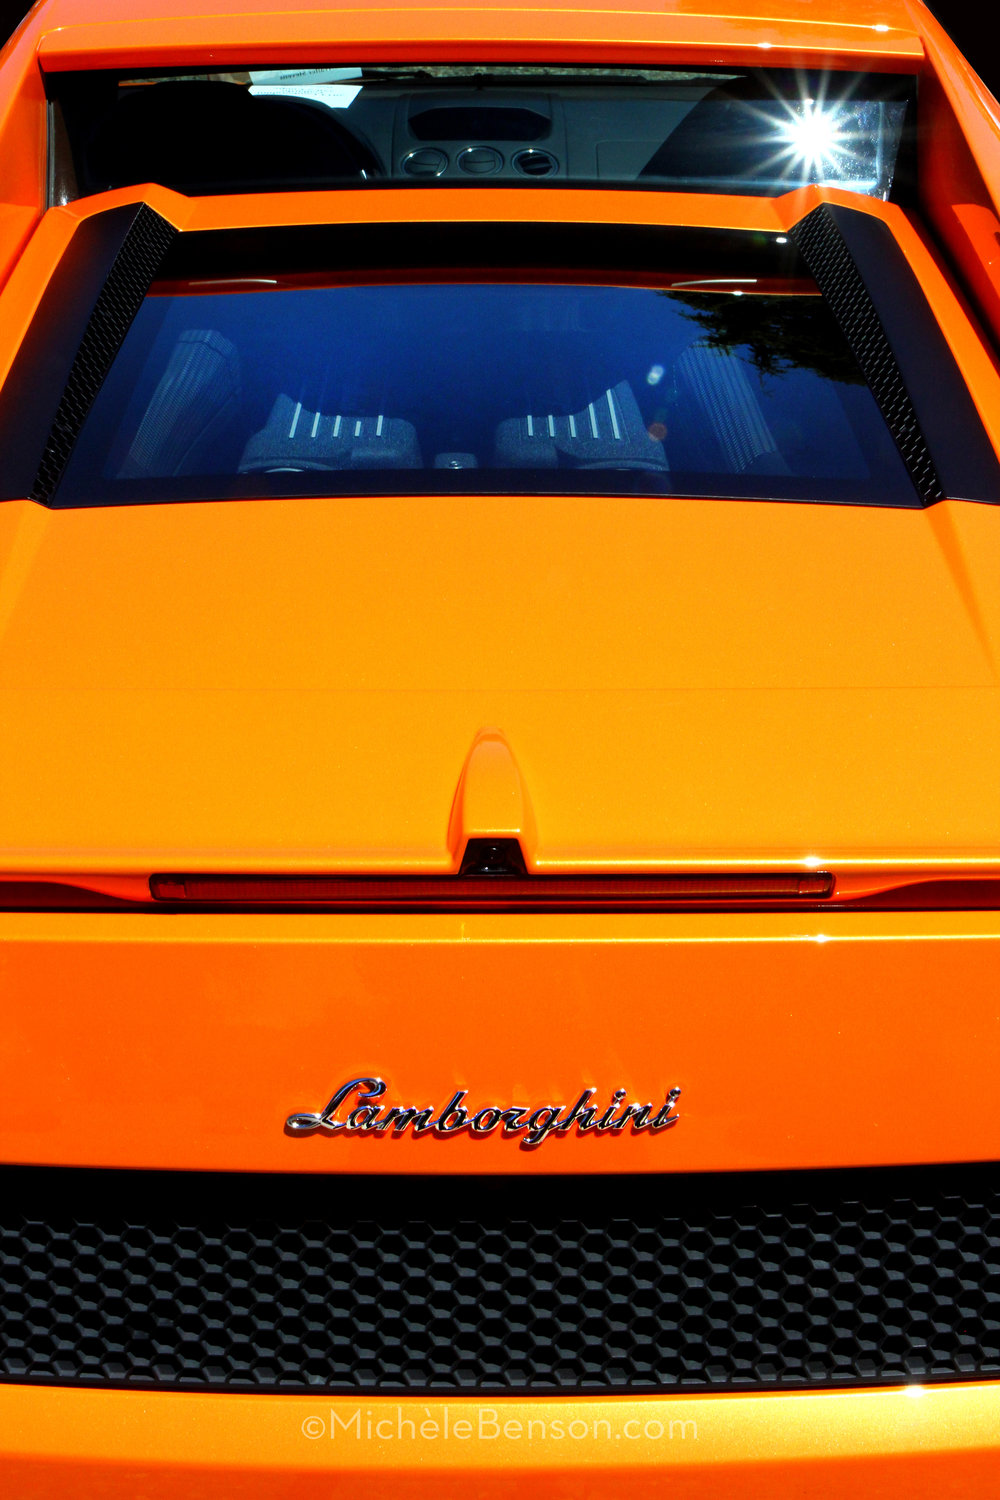 2014 Lamborghini Gallardo 550-2 Coupe Carmel, California 2015